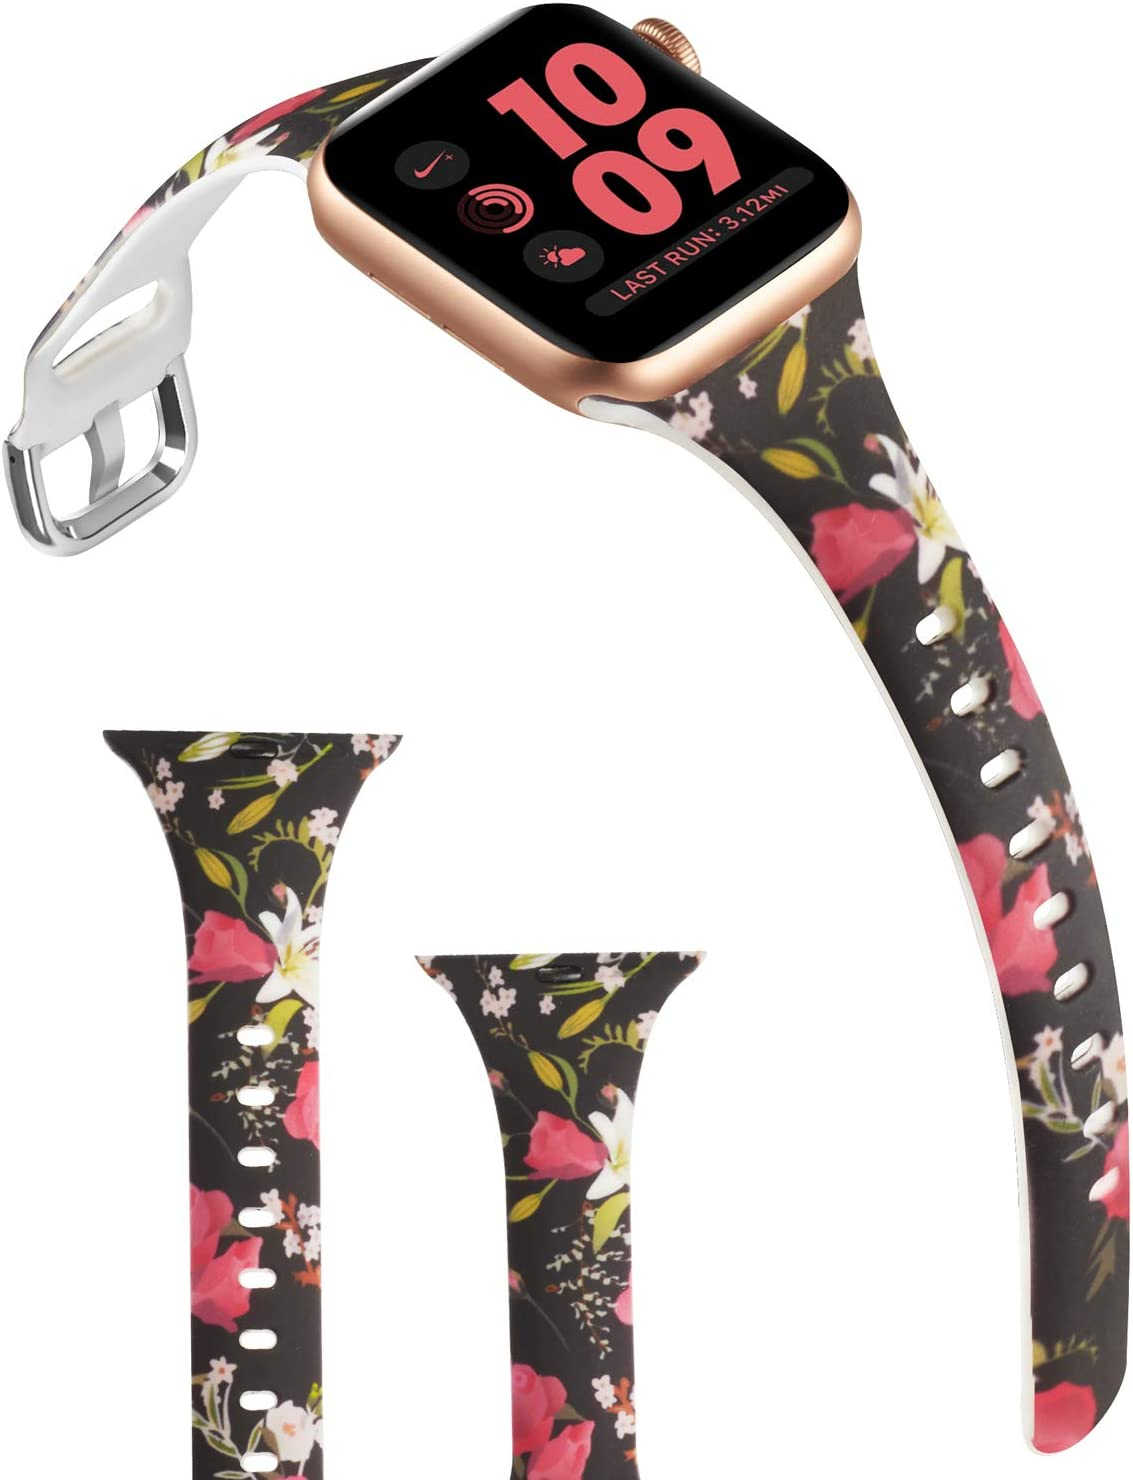 ACBEE Compatible with Apple Watch Band 38mm 40mm 42mm 44mm for Women Small Large, Slim Narrow Floral Bands for Apple Watch Series 5/Series 4/Series 3/Series 2/Series 1 (Flowering, 38mm/40mm)